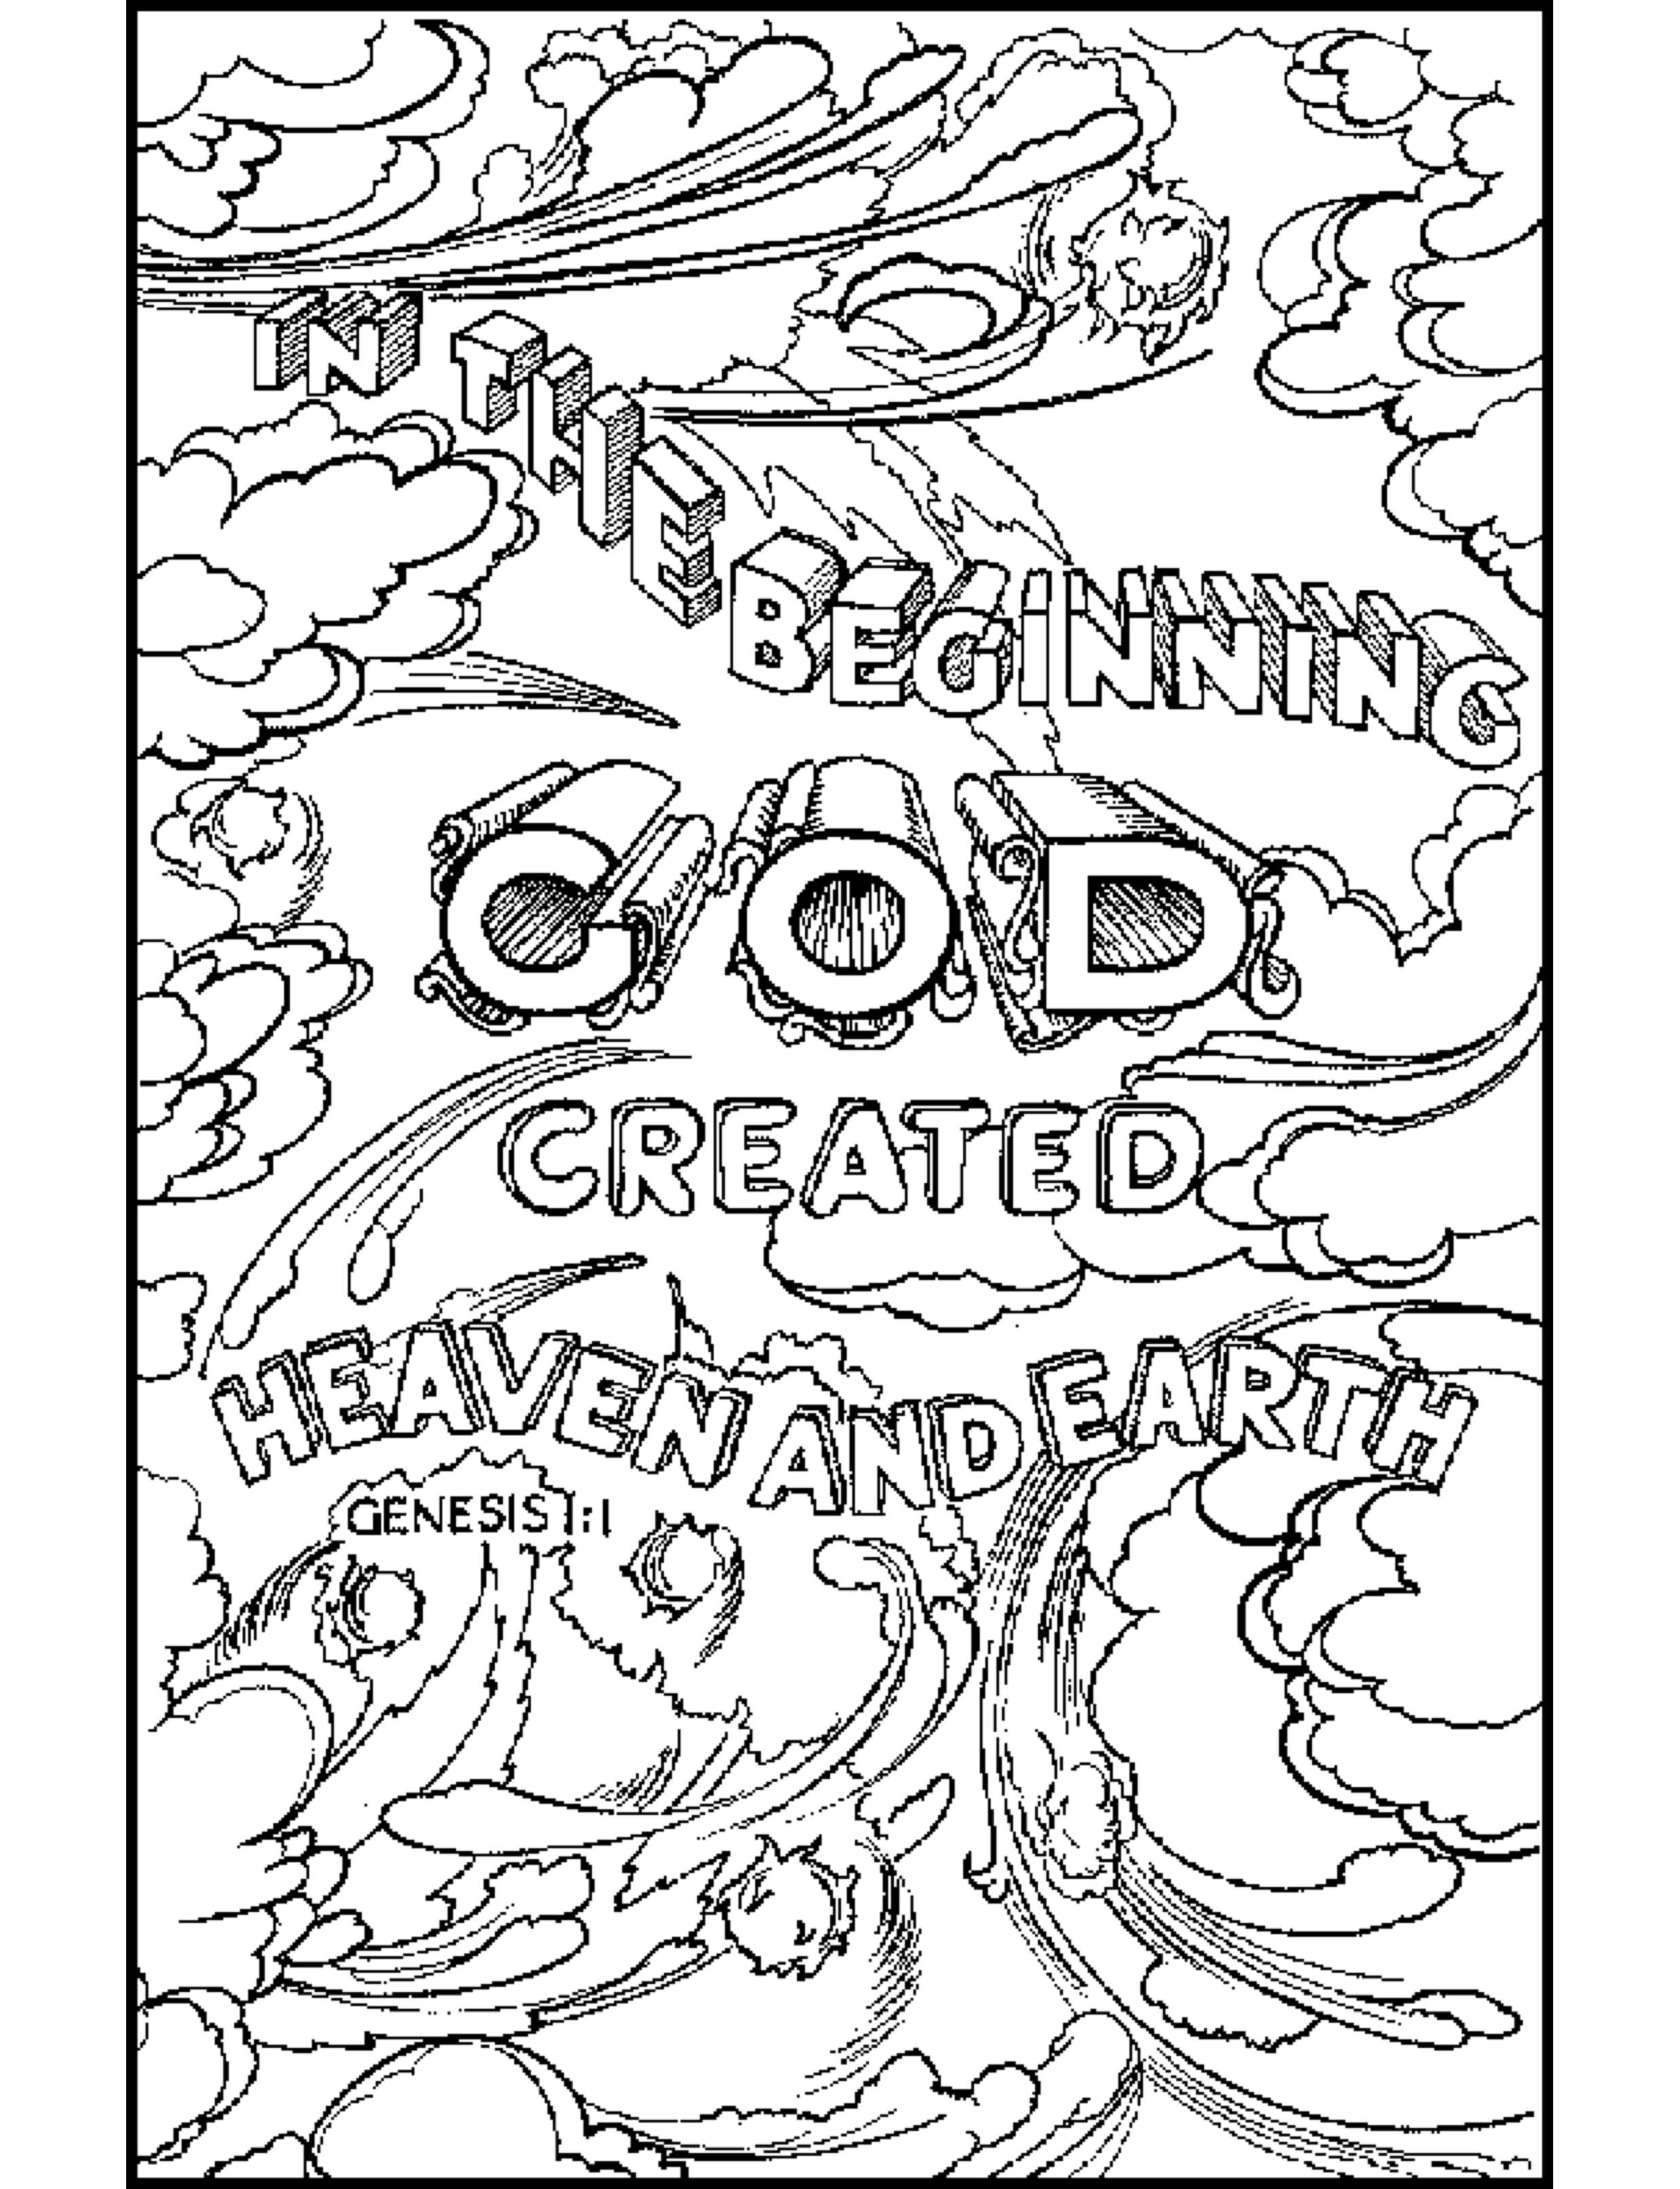 free printable bible coloring pages for children moses bible page to print and color 030 free coloring pages printable for bible children